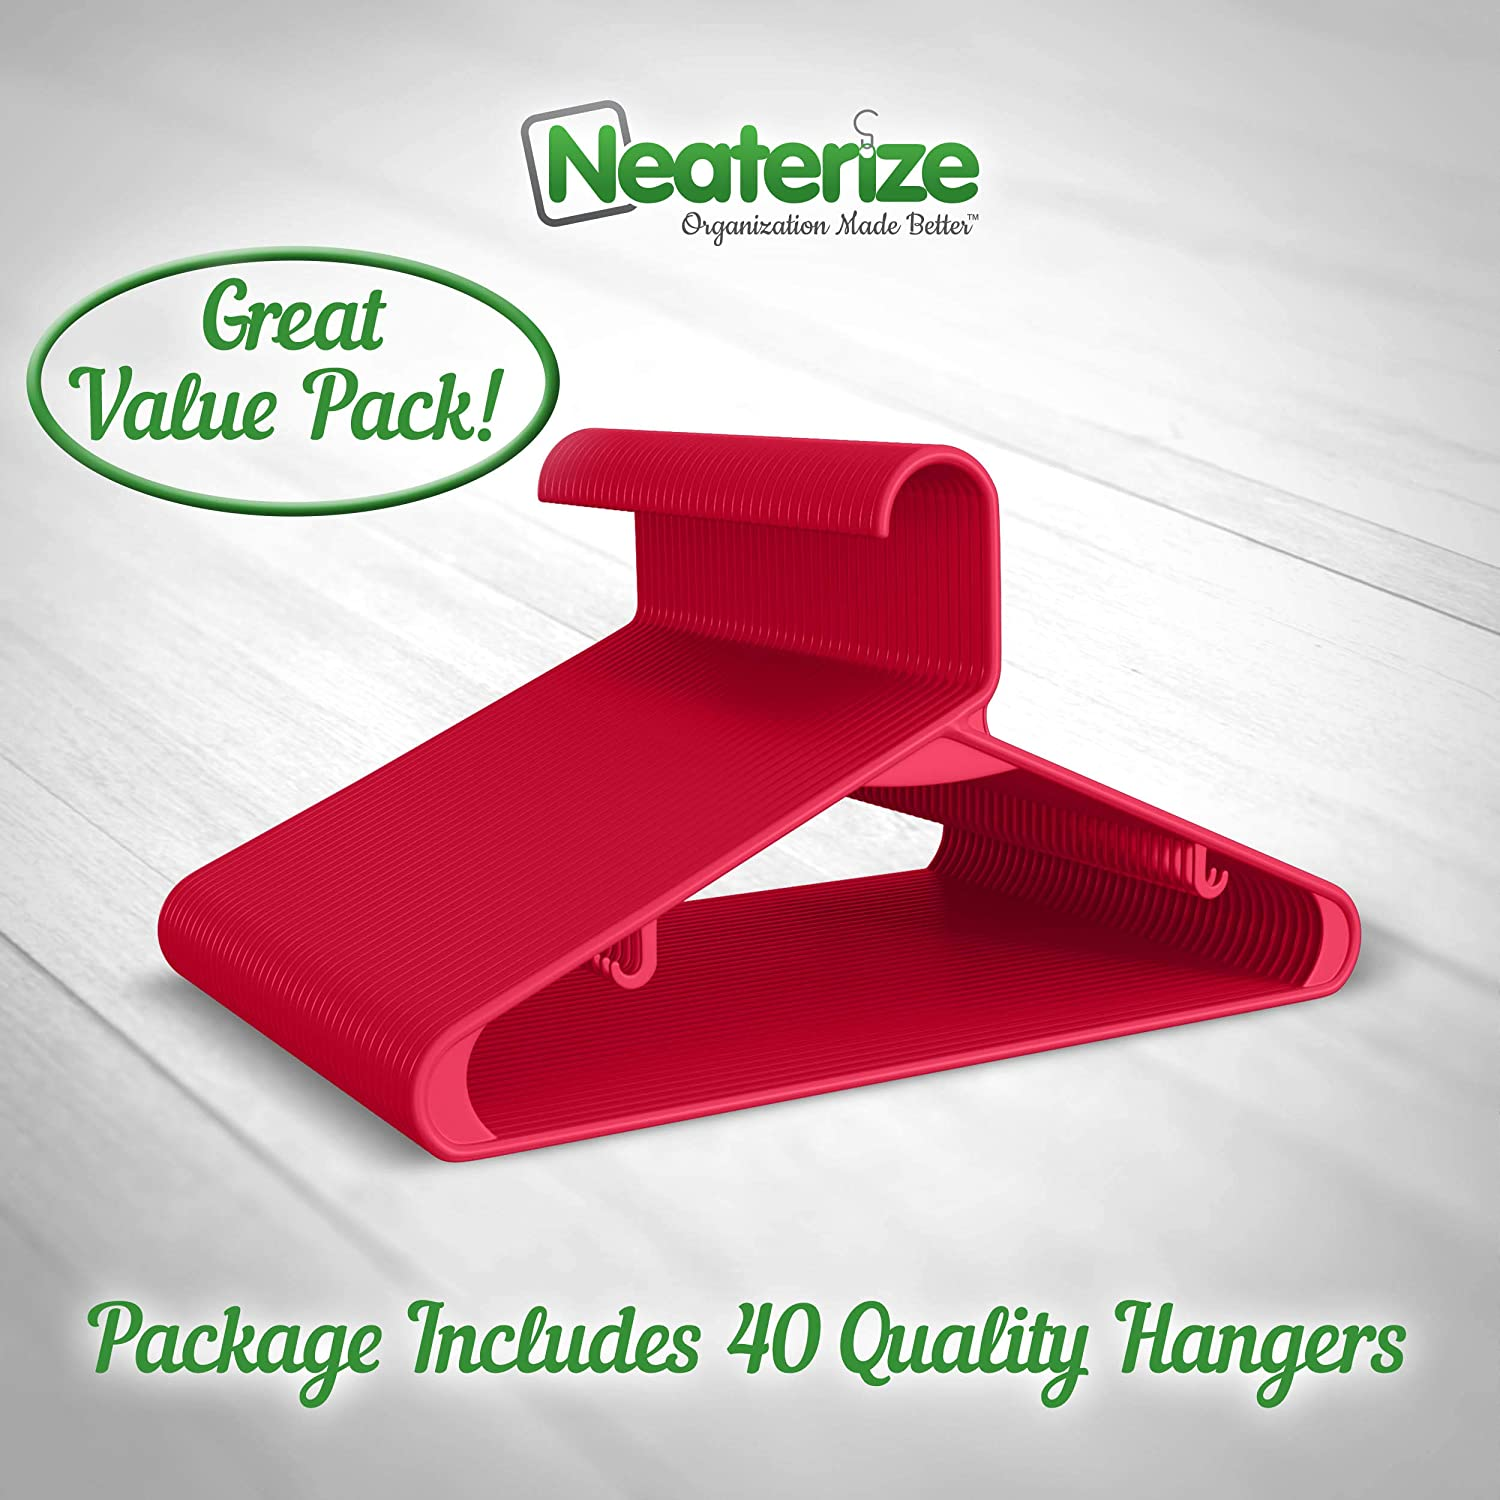 NEATERIZE Plastic Clothes Hangers 20 Pack - Brown 20 Vibrant Colors Adult Hangers 40 Heavy Duty Durable Coat and Clothes Hangers 60 Available Lightweight Space Saving Laundry Hangers